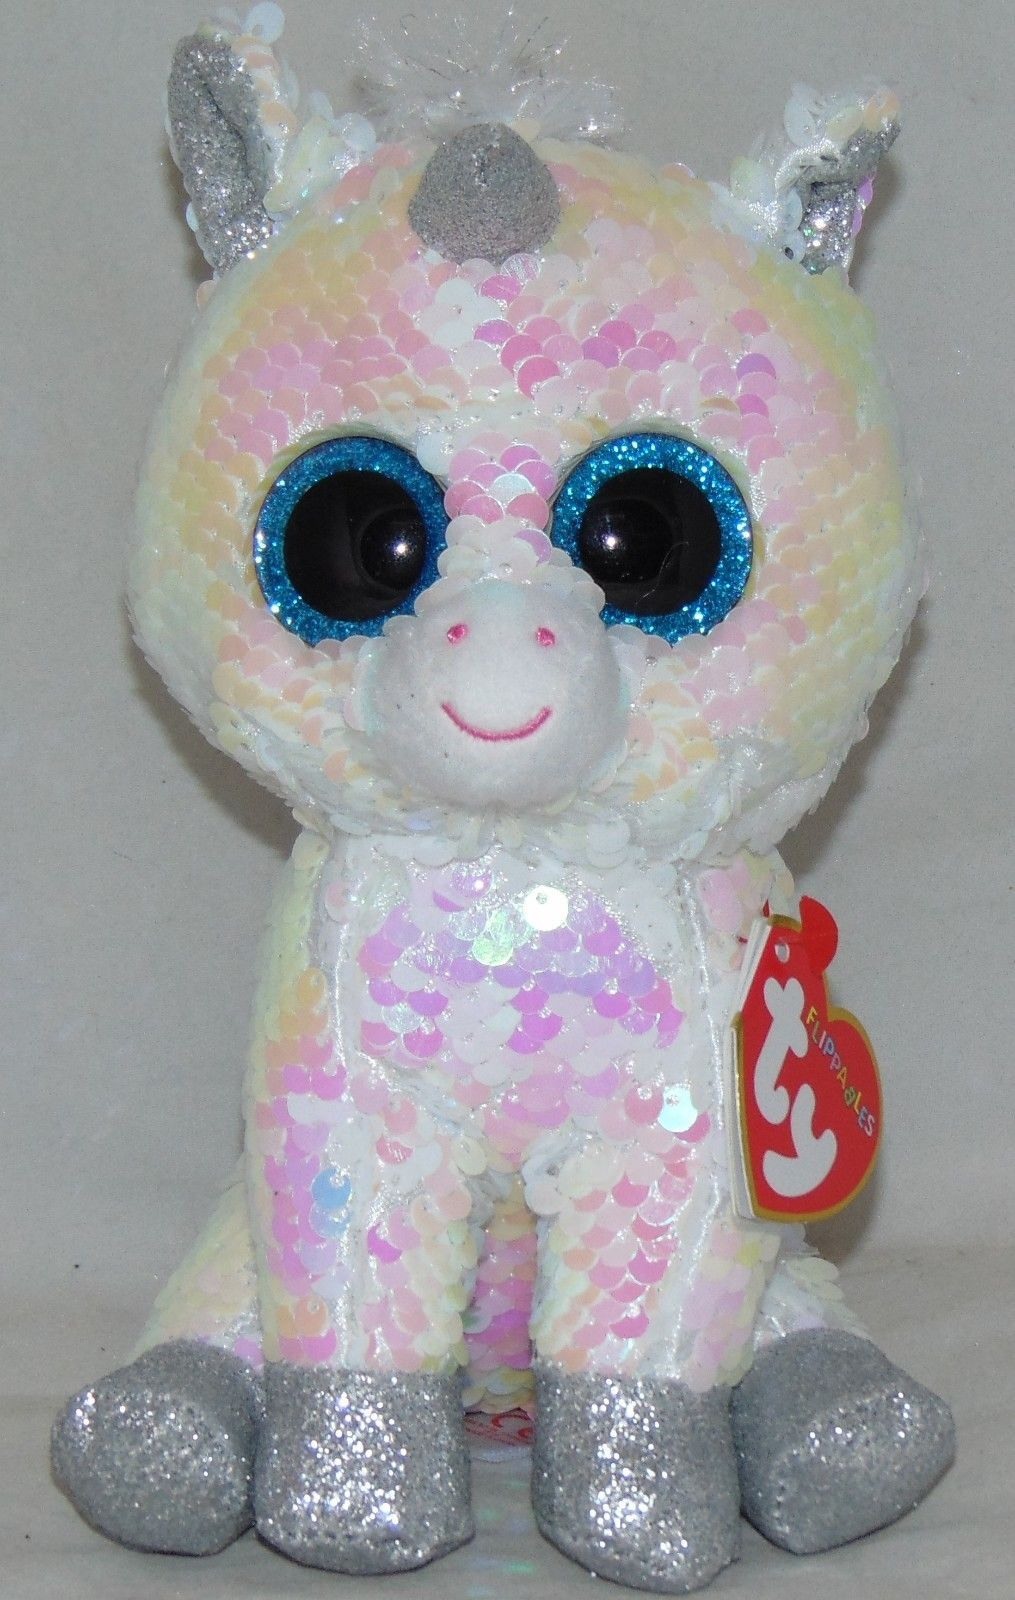 90e2c09373e Ty 19203  Hot New Toy! Ty Flippables Diamond The Unicorn Changing Sequins 6  Htf -  BUY IT NOW ONLY   14.99 on  eBay  flippables  diamond  unicorn   changing ...